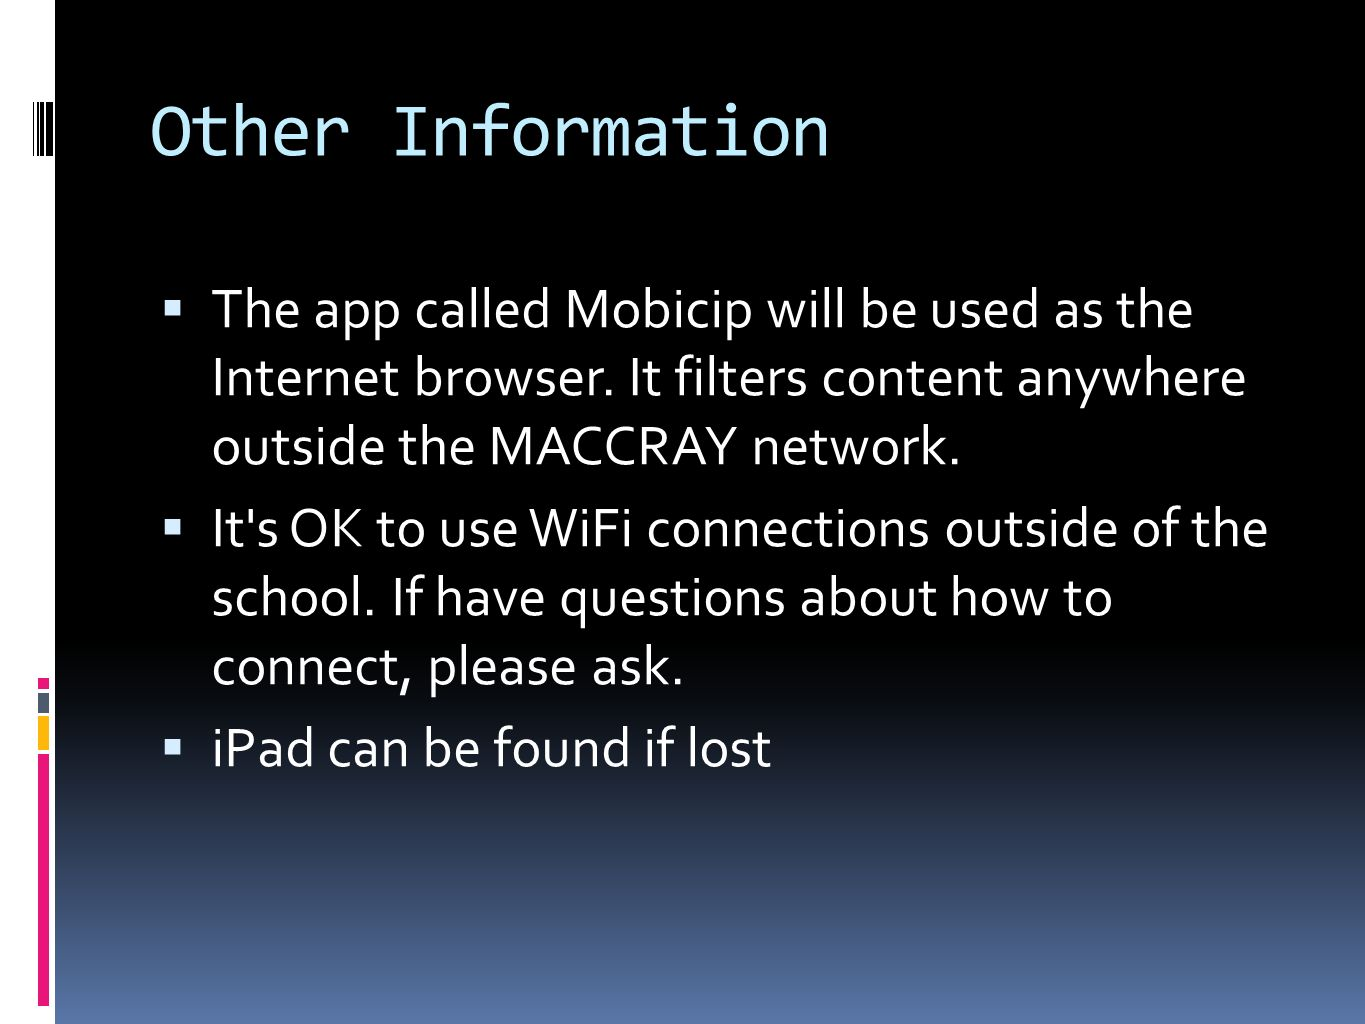 Other Information The app called Mobicip will be used as the Internet browser. It filters content anywhere outside the MACCRAY network. It's OK to use